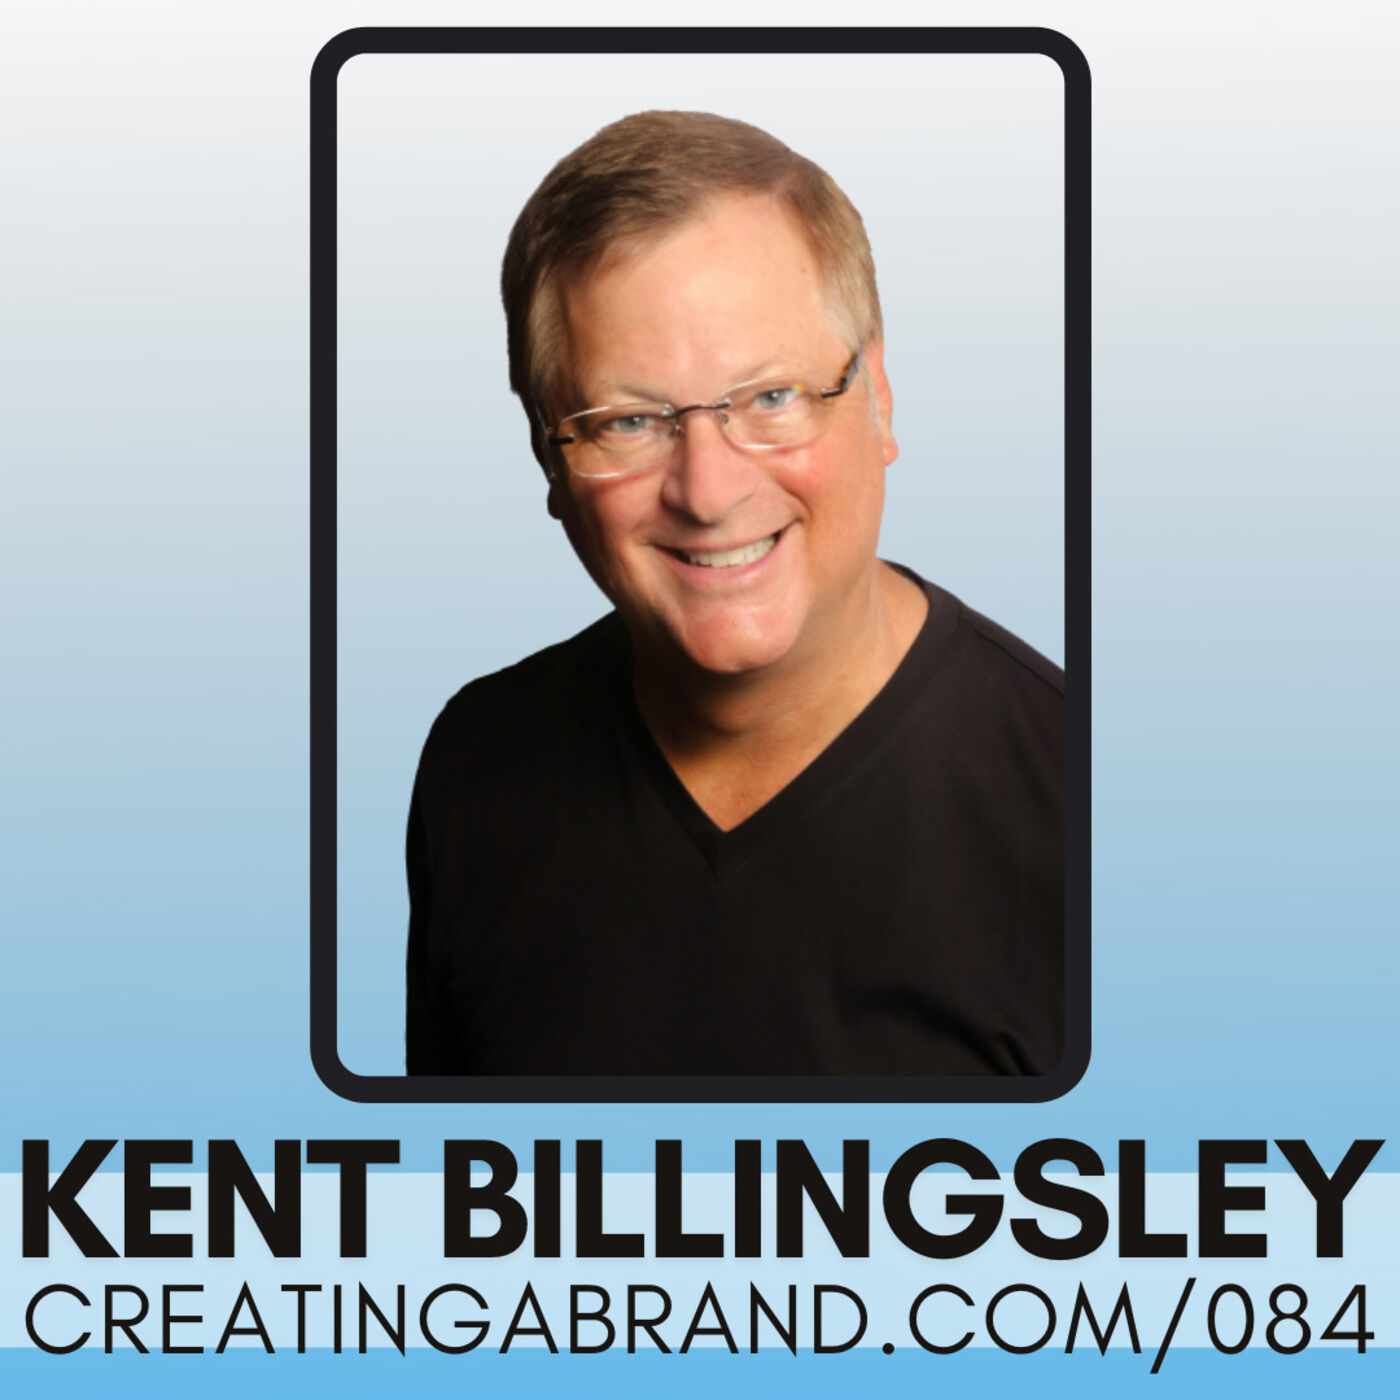 Going from Entrepreneur to Millionaire with Kent Billingsley